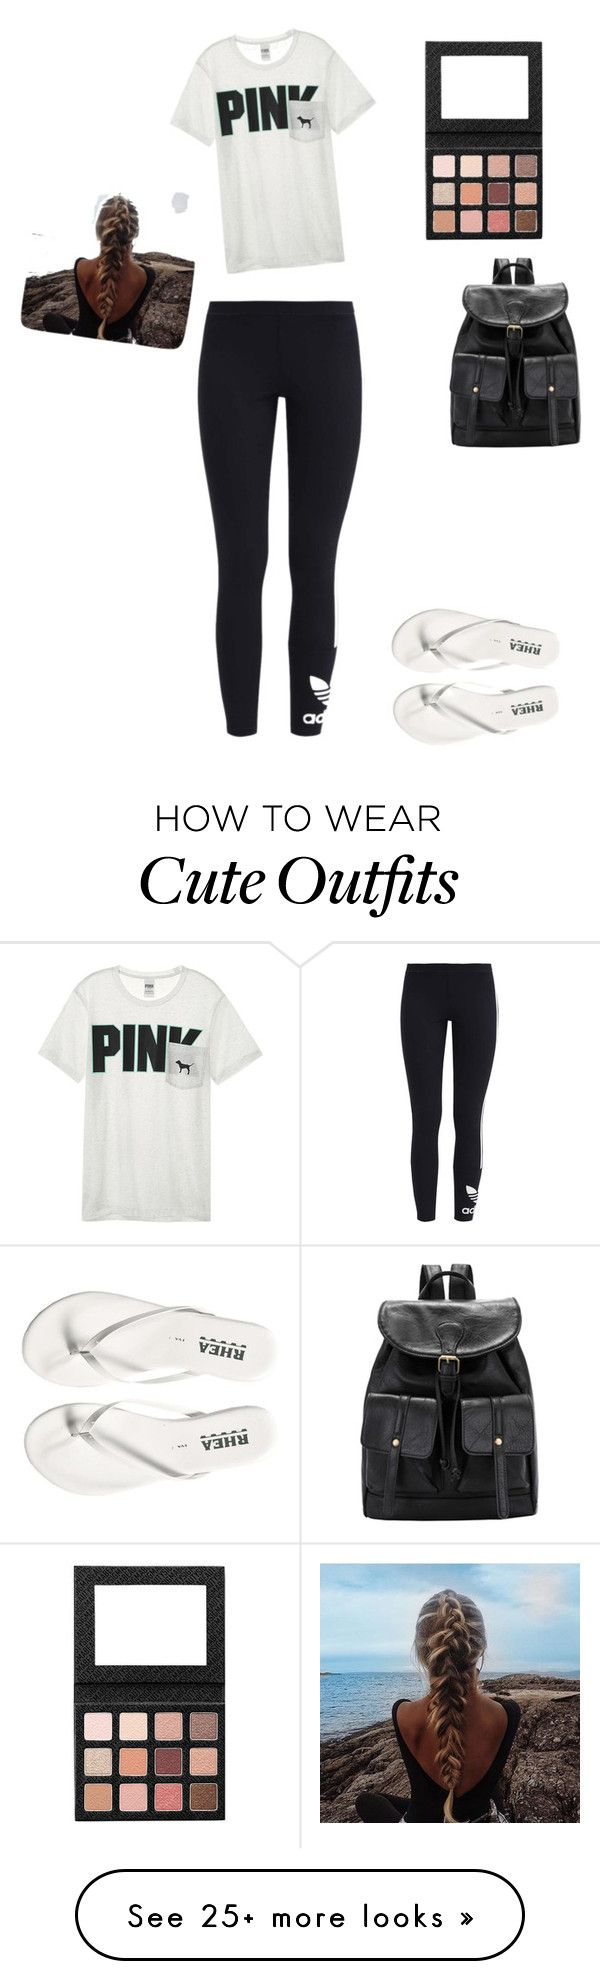 """""""Casual outfit with leggings"""" by khoneygirl on Polyvore featuring adidas Originals, Victoria's Secret, Leggings and WardrobeStaples"""